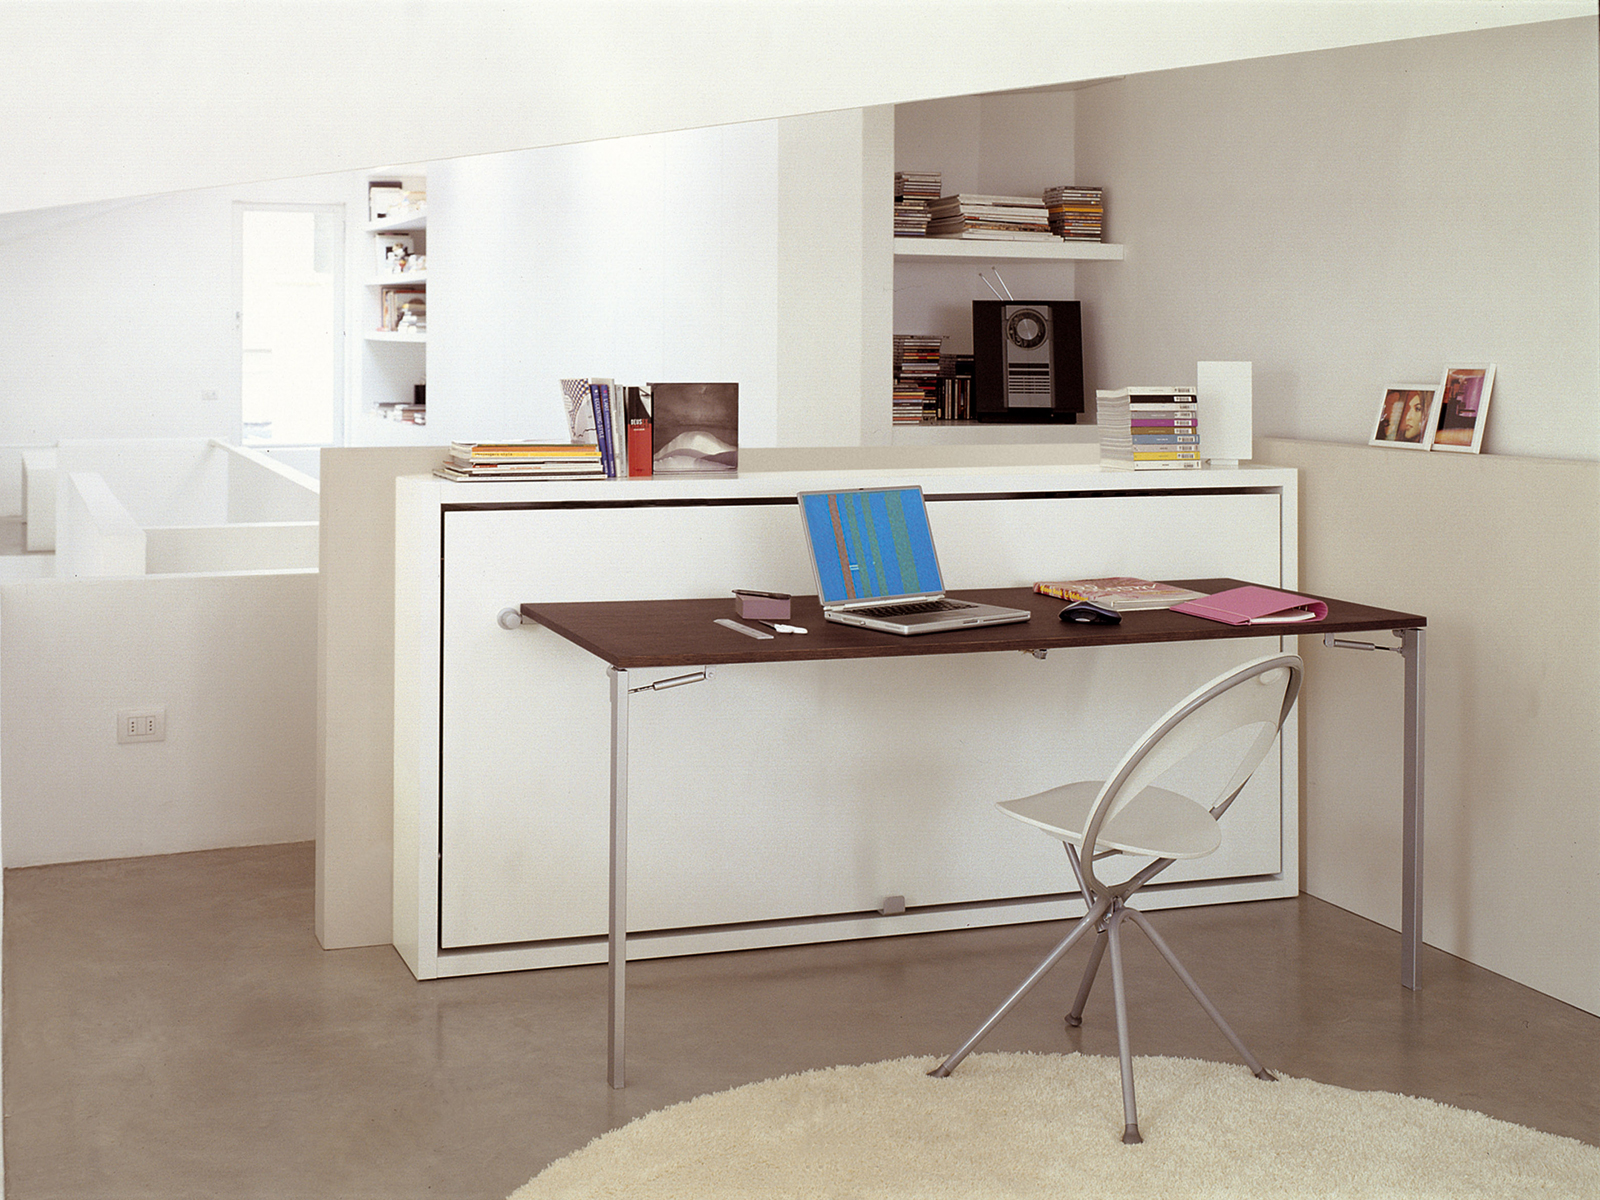 Lit simple escamotable poppi desk by clei for Clei wall bed